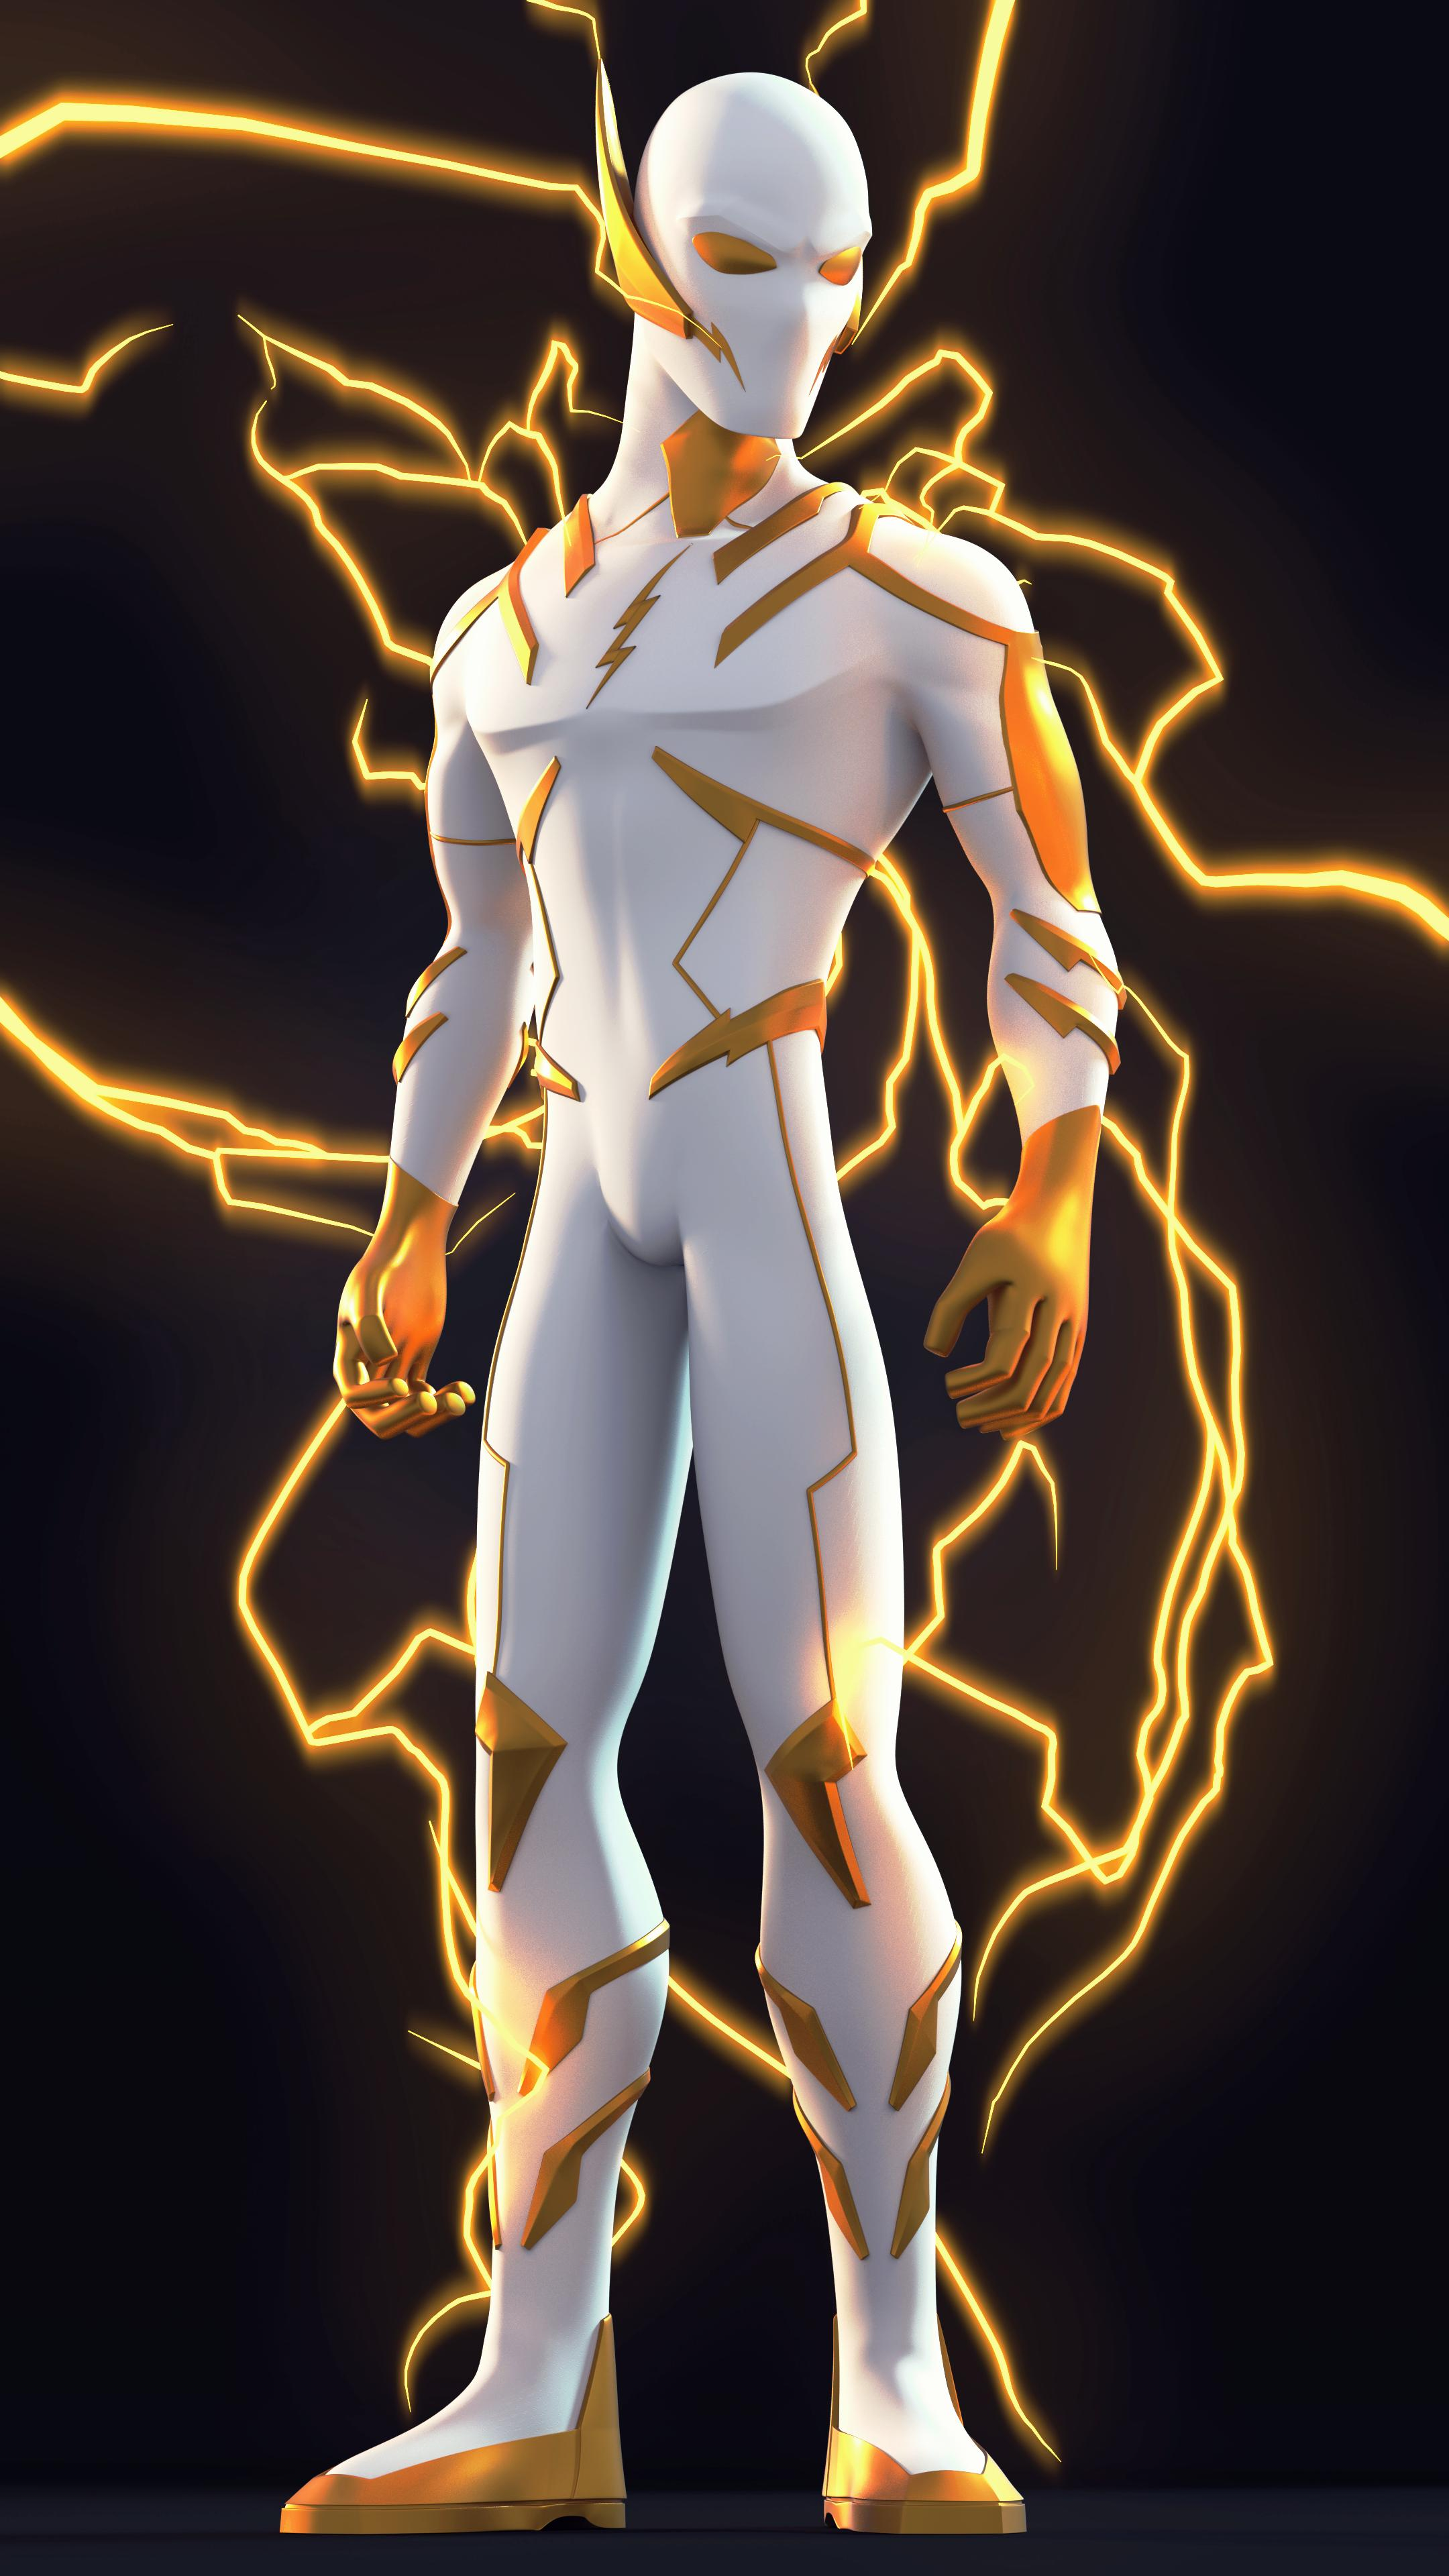 Flash Godspeed Wallpapers   Top Flash Godspeed Backgrounds 2160x3840